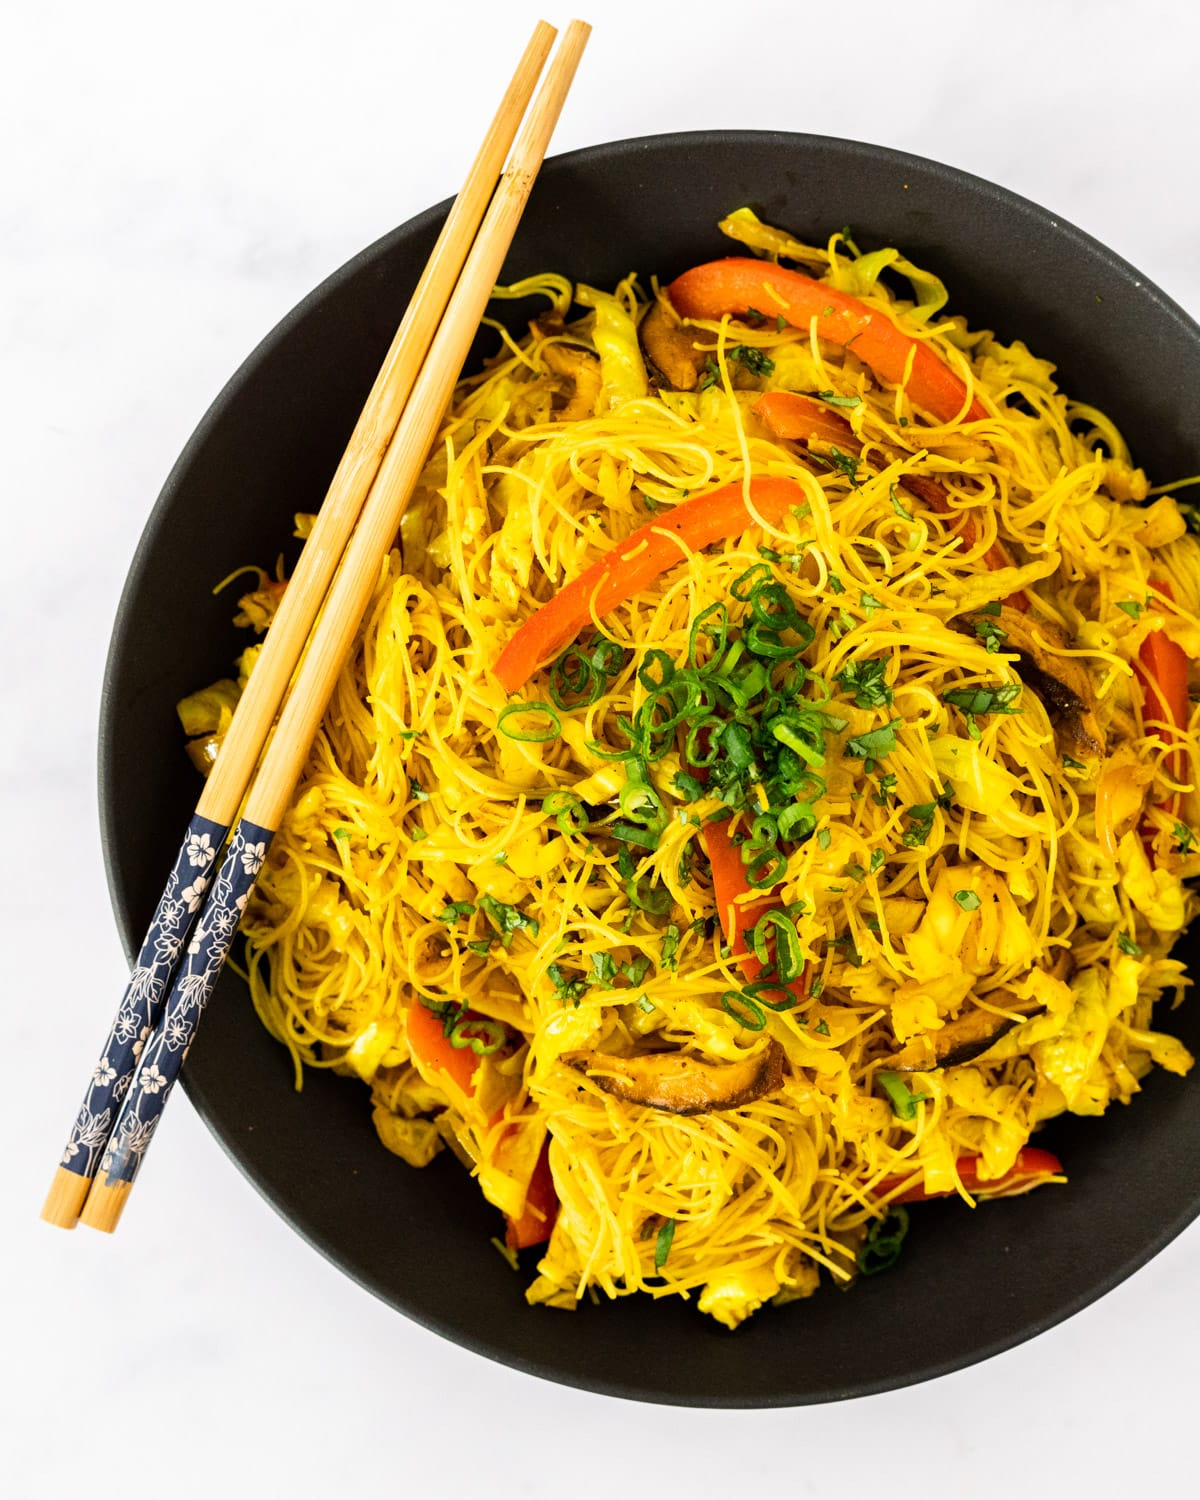 A serving bowl filled with vegan Singapore noodles.